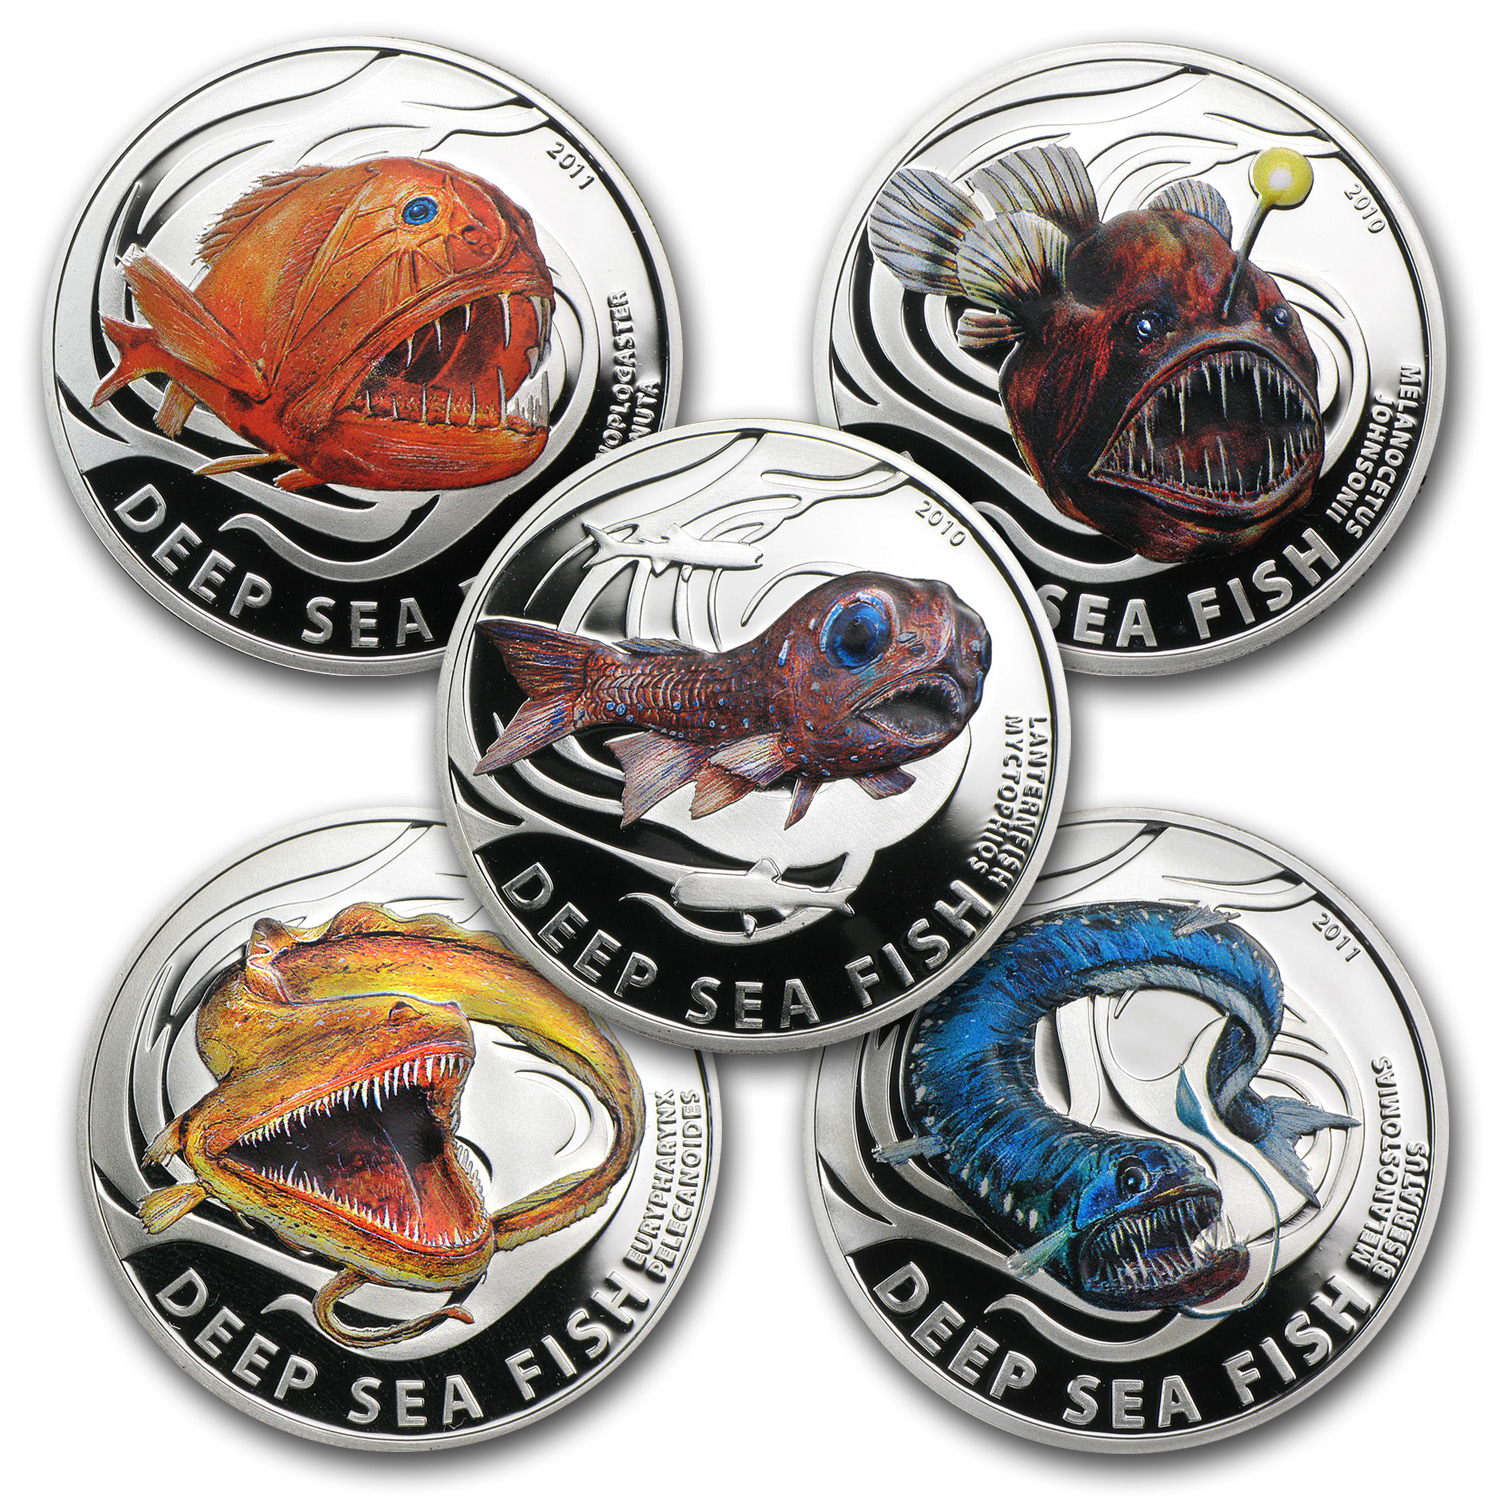 Pitcairn Islands 2011 5-Coin Silver Deep Sea Fish Proof Set